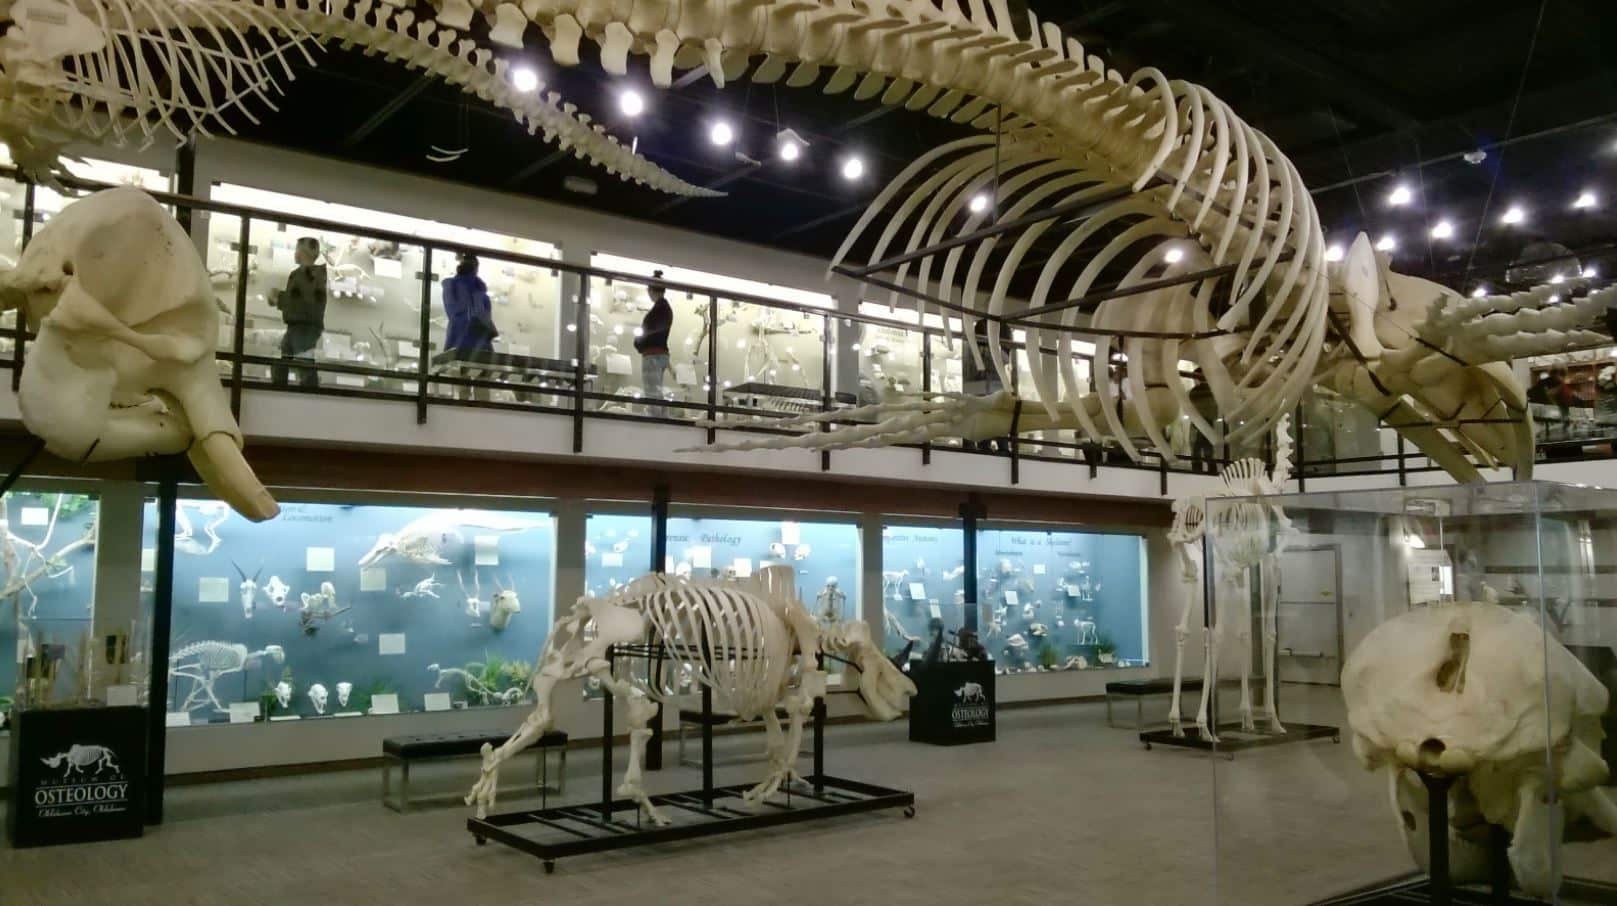 Museum of Osteology in Oklahoma City